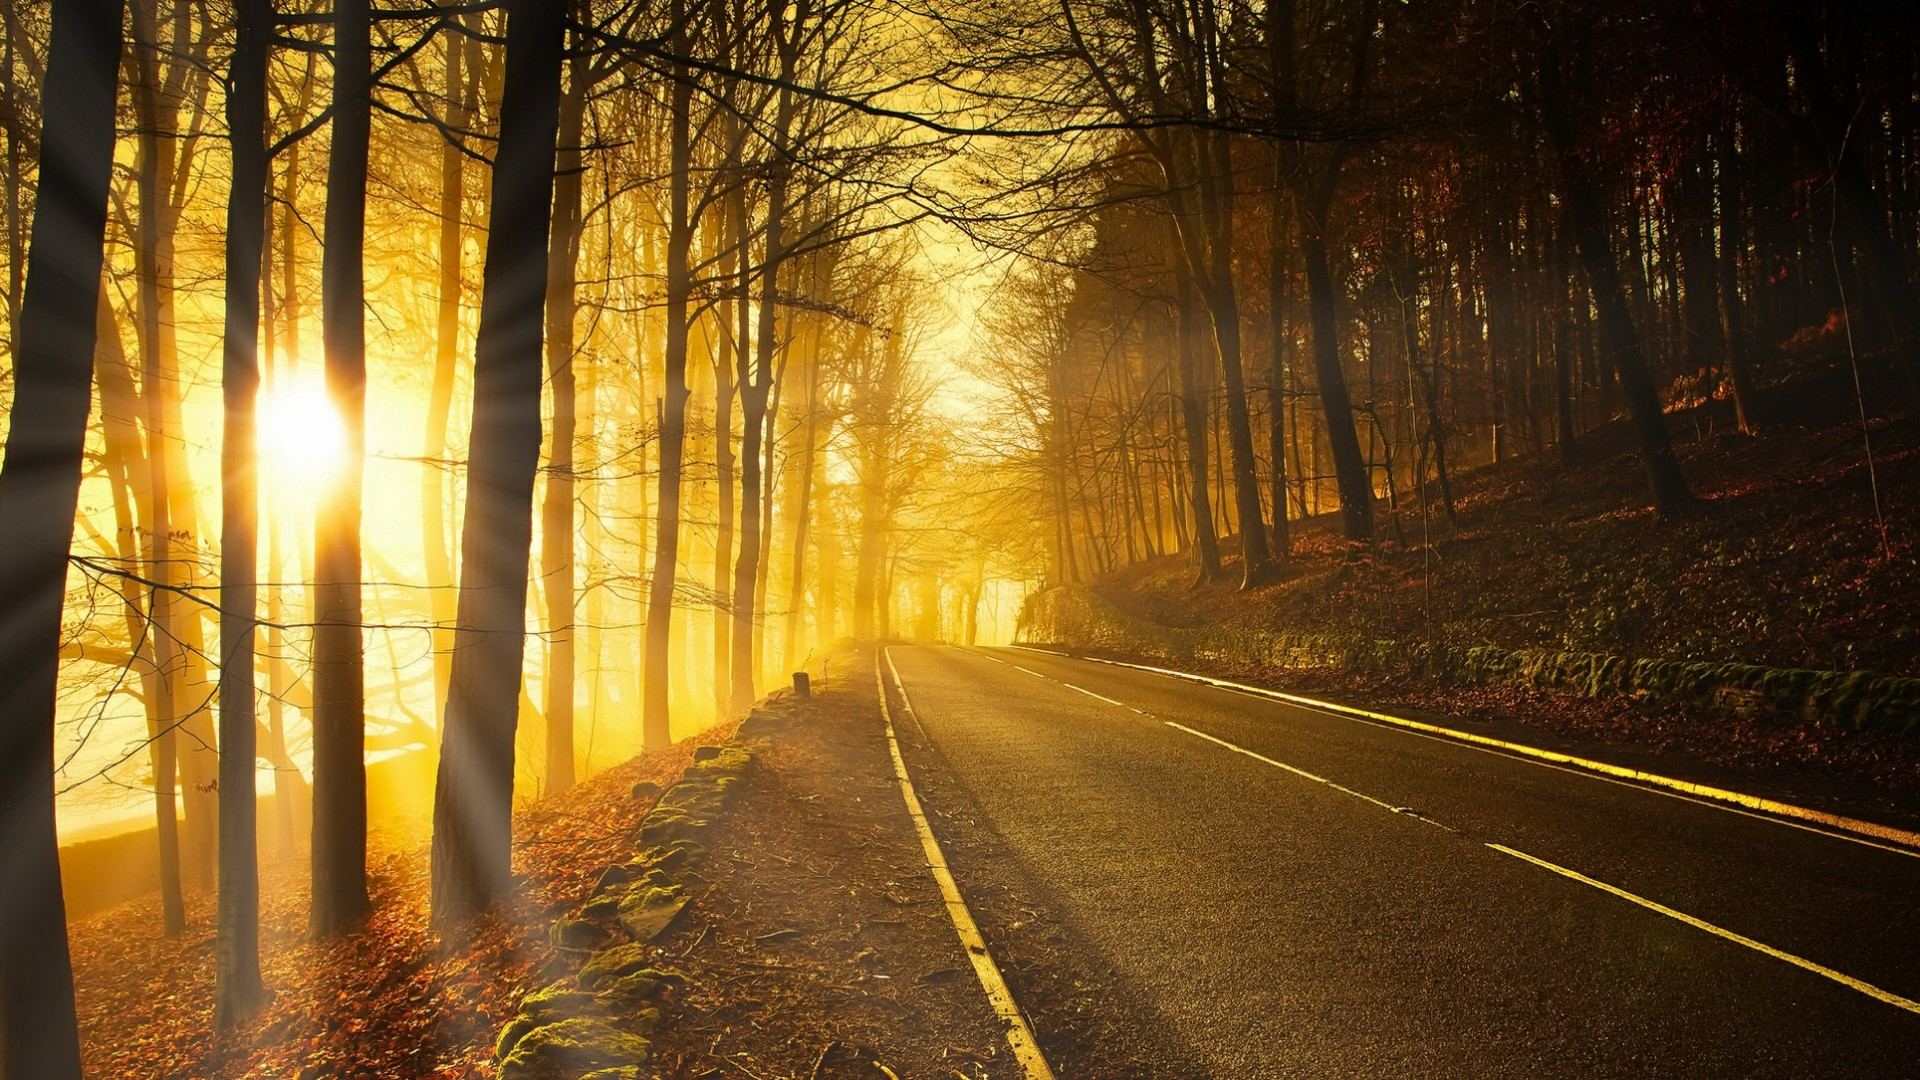 Forest road in the autumn sunlight wallpaper